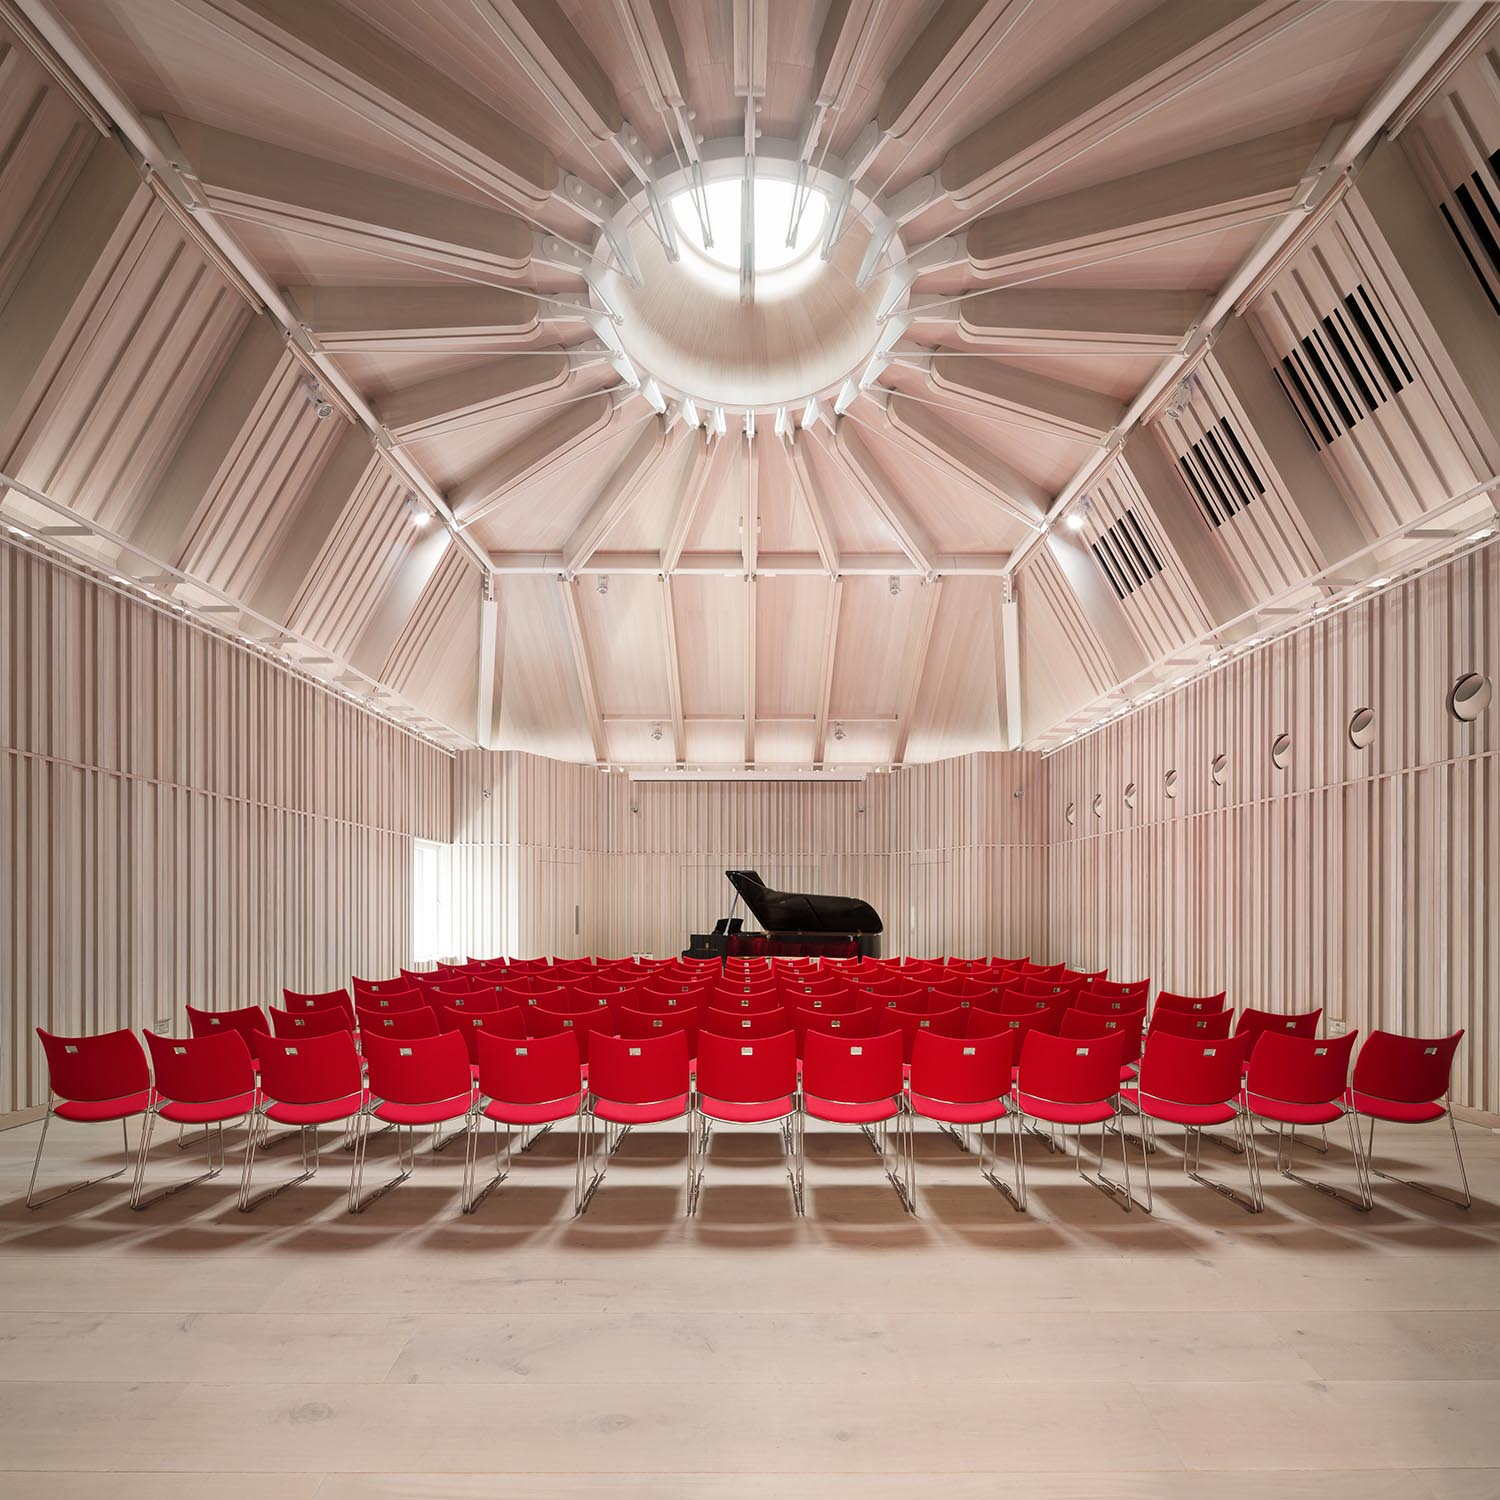 Angela Burgess Recital Hall - The new 100-seat Angela Burgess Recital Hall sits directly above the Theatre and is acoustically isolated from it Adam Scott